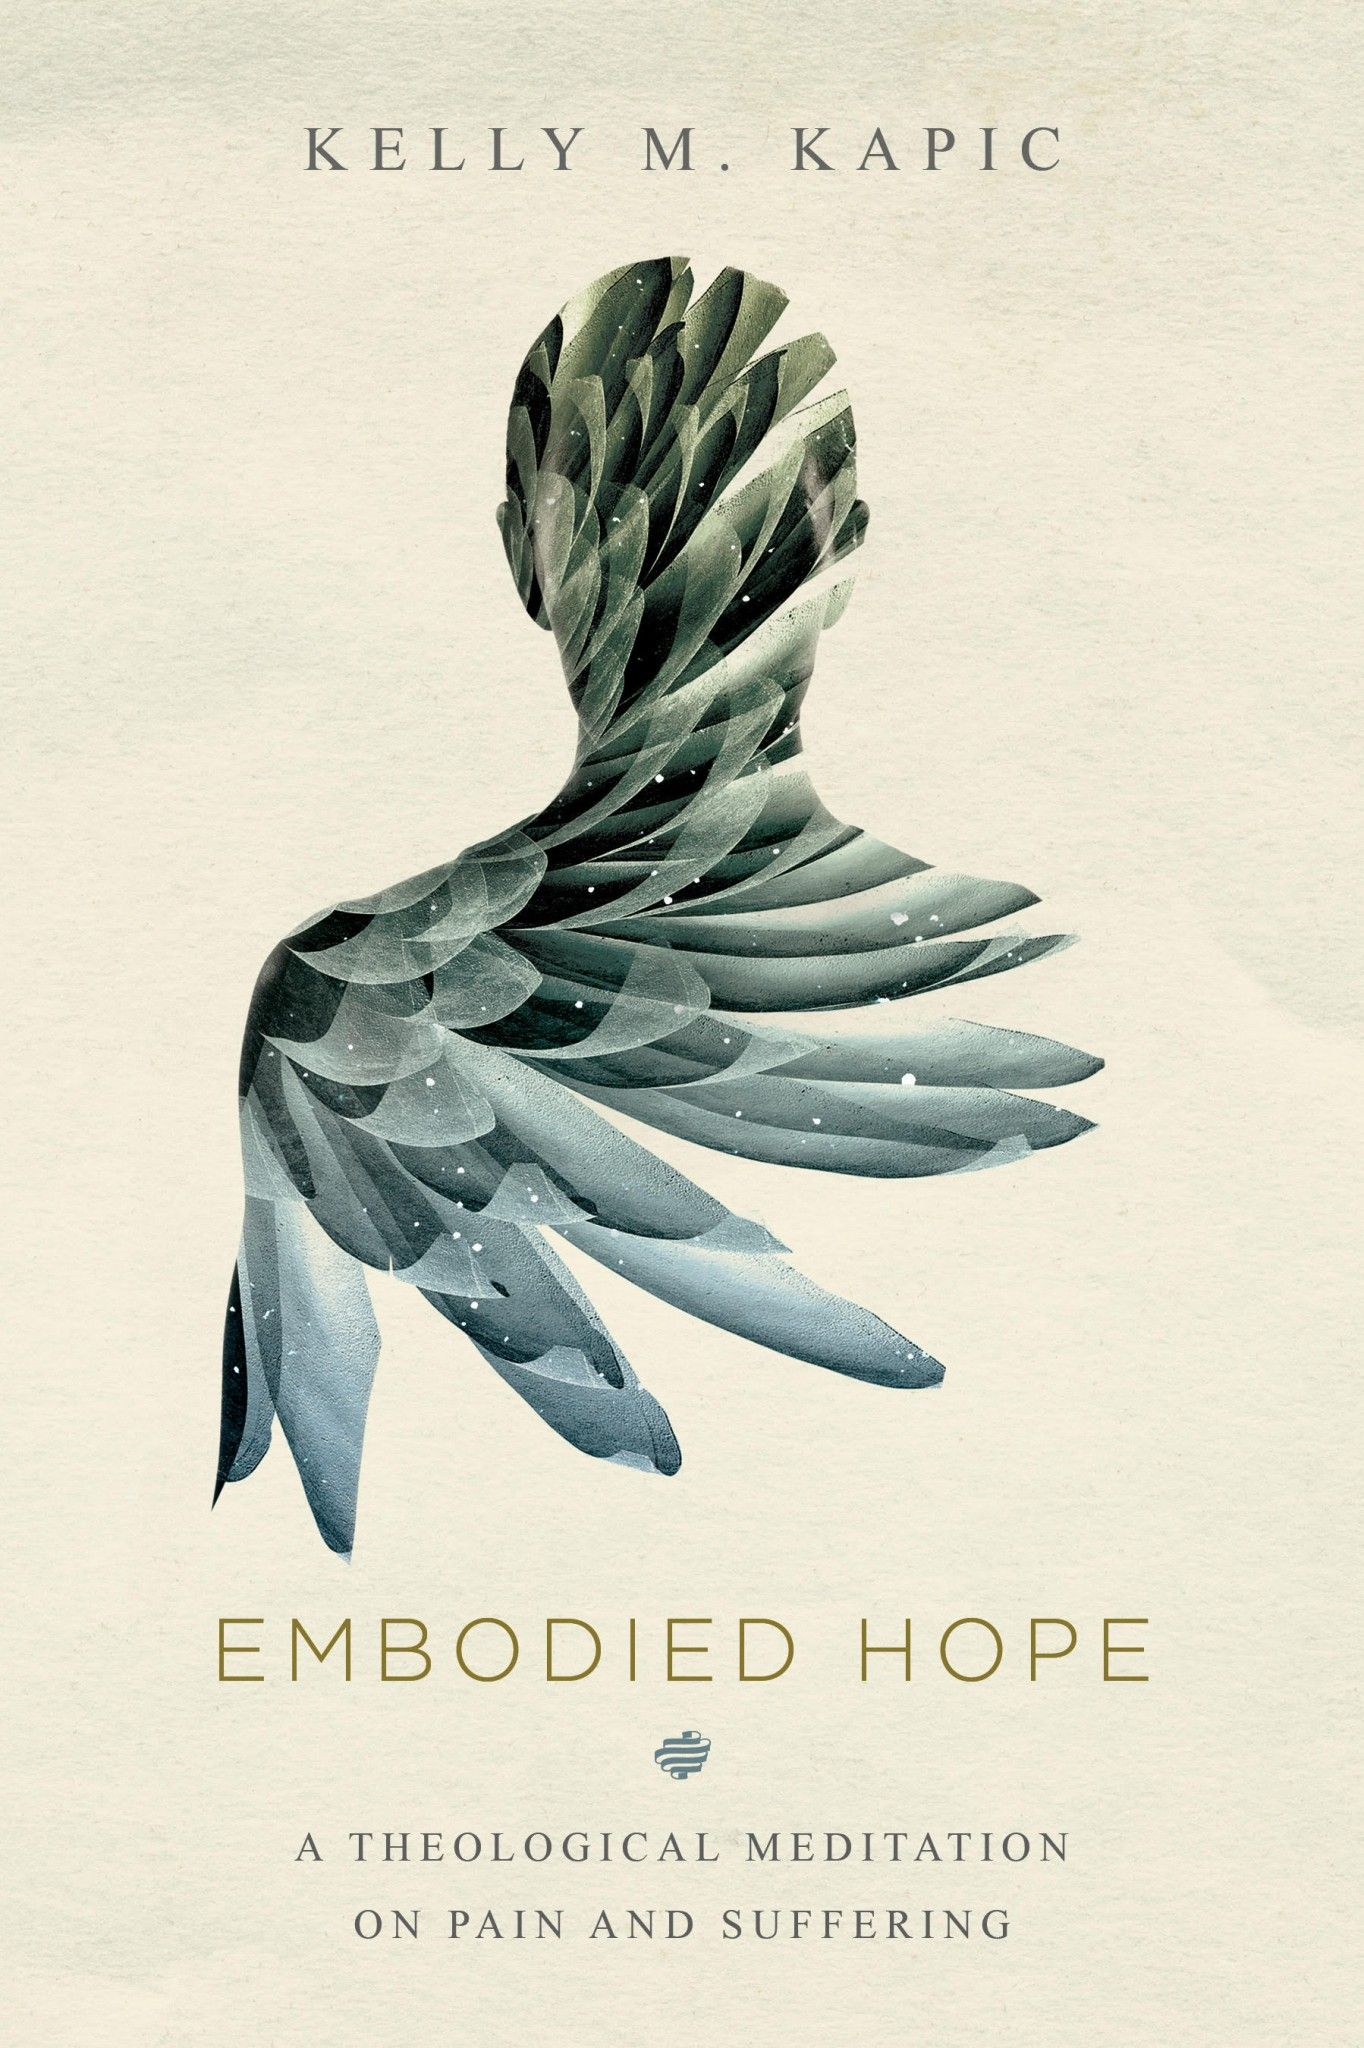 Embodied Hope Ecpa Book Cover Awards Top Shelf Book Cover Design Inspiration Graphic Design Books Book Cover Illustration